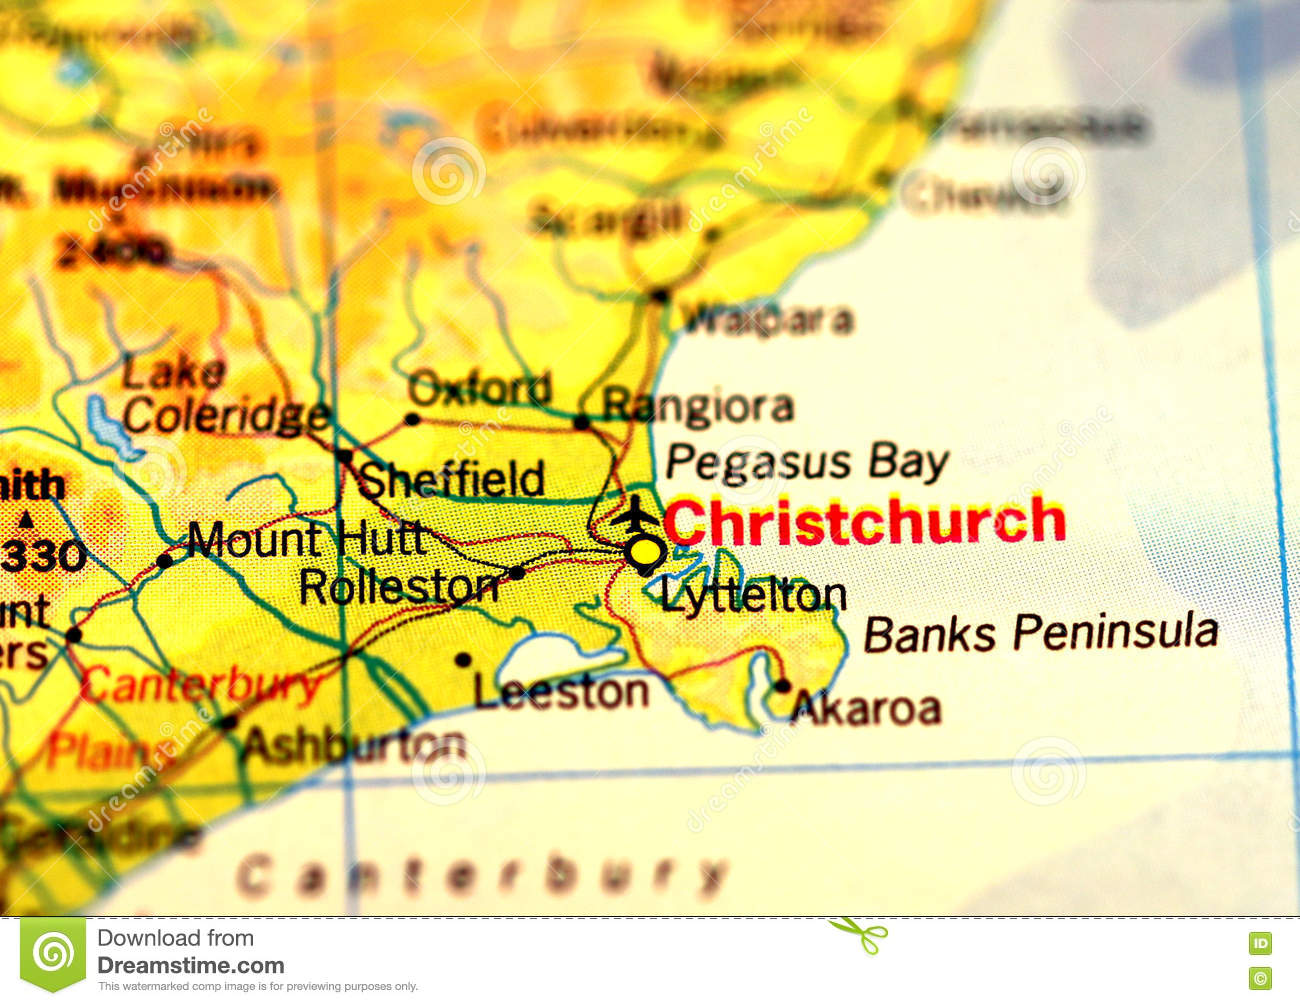 New Zealand Christchurch Map.Christchurch Map Stock Photo Image Of Zealand Cold 74874016